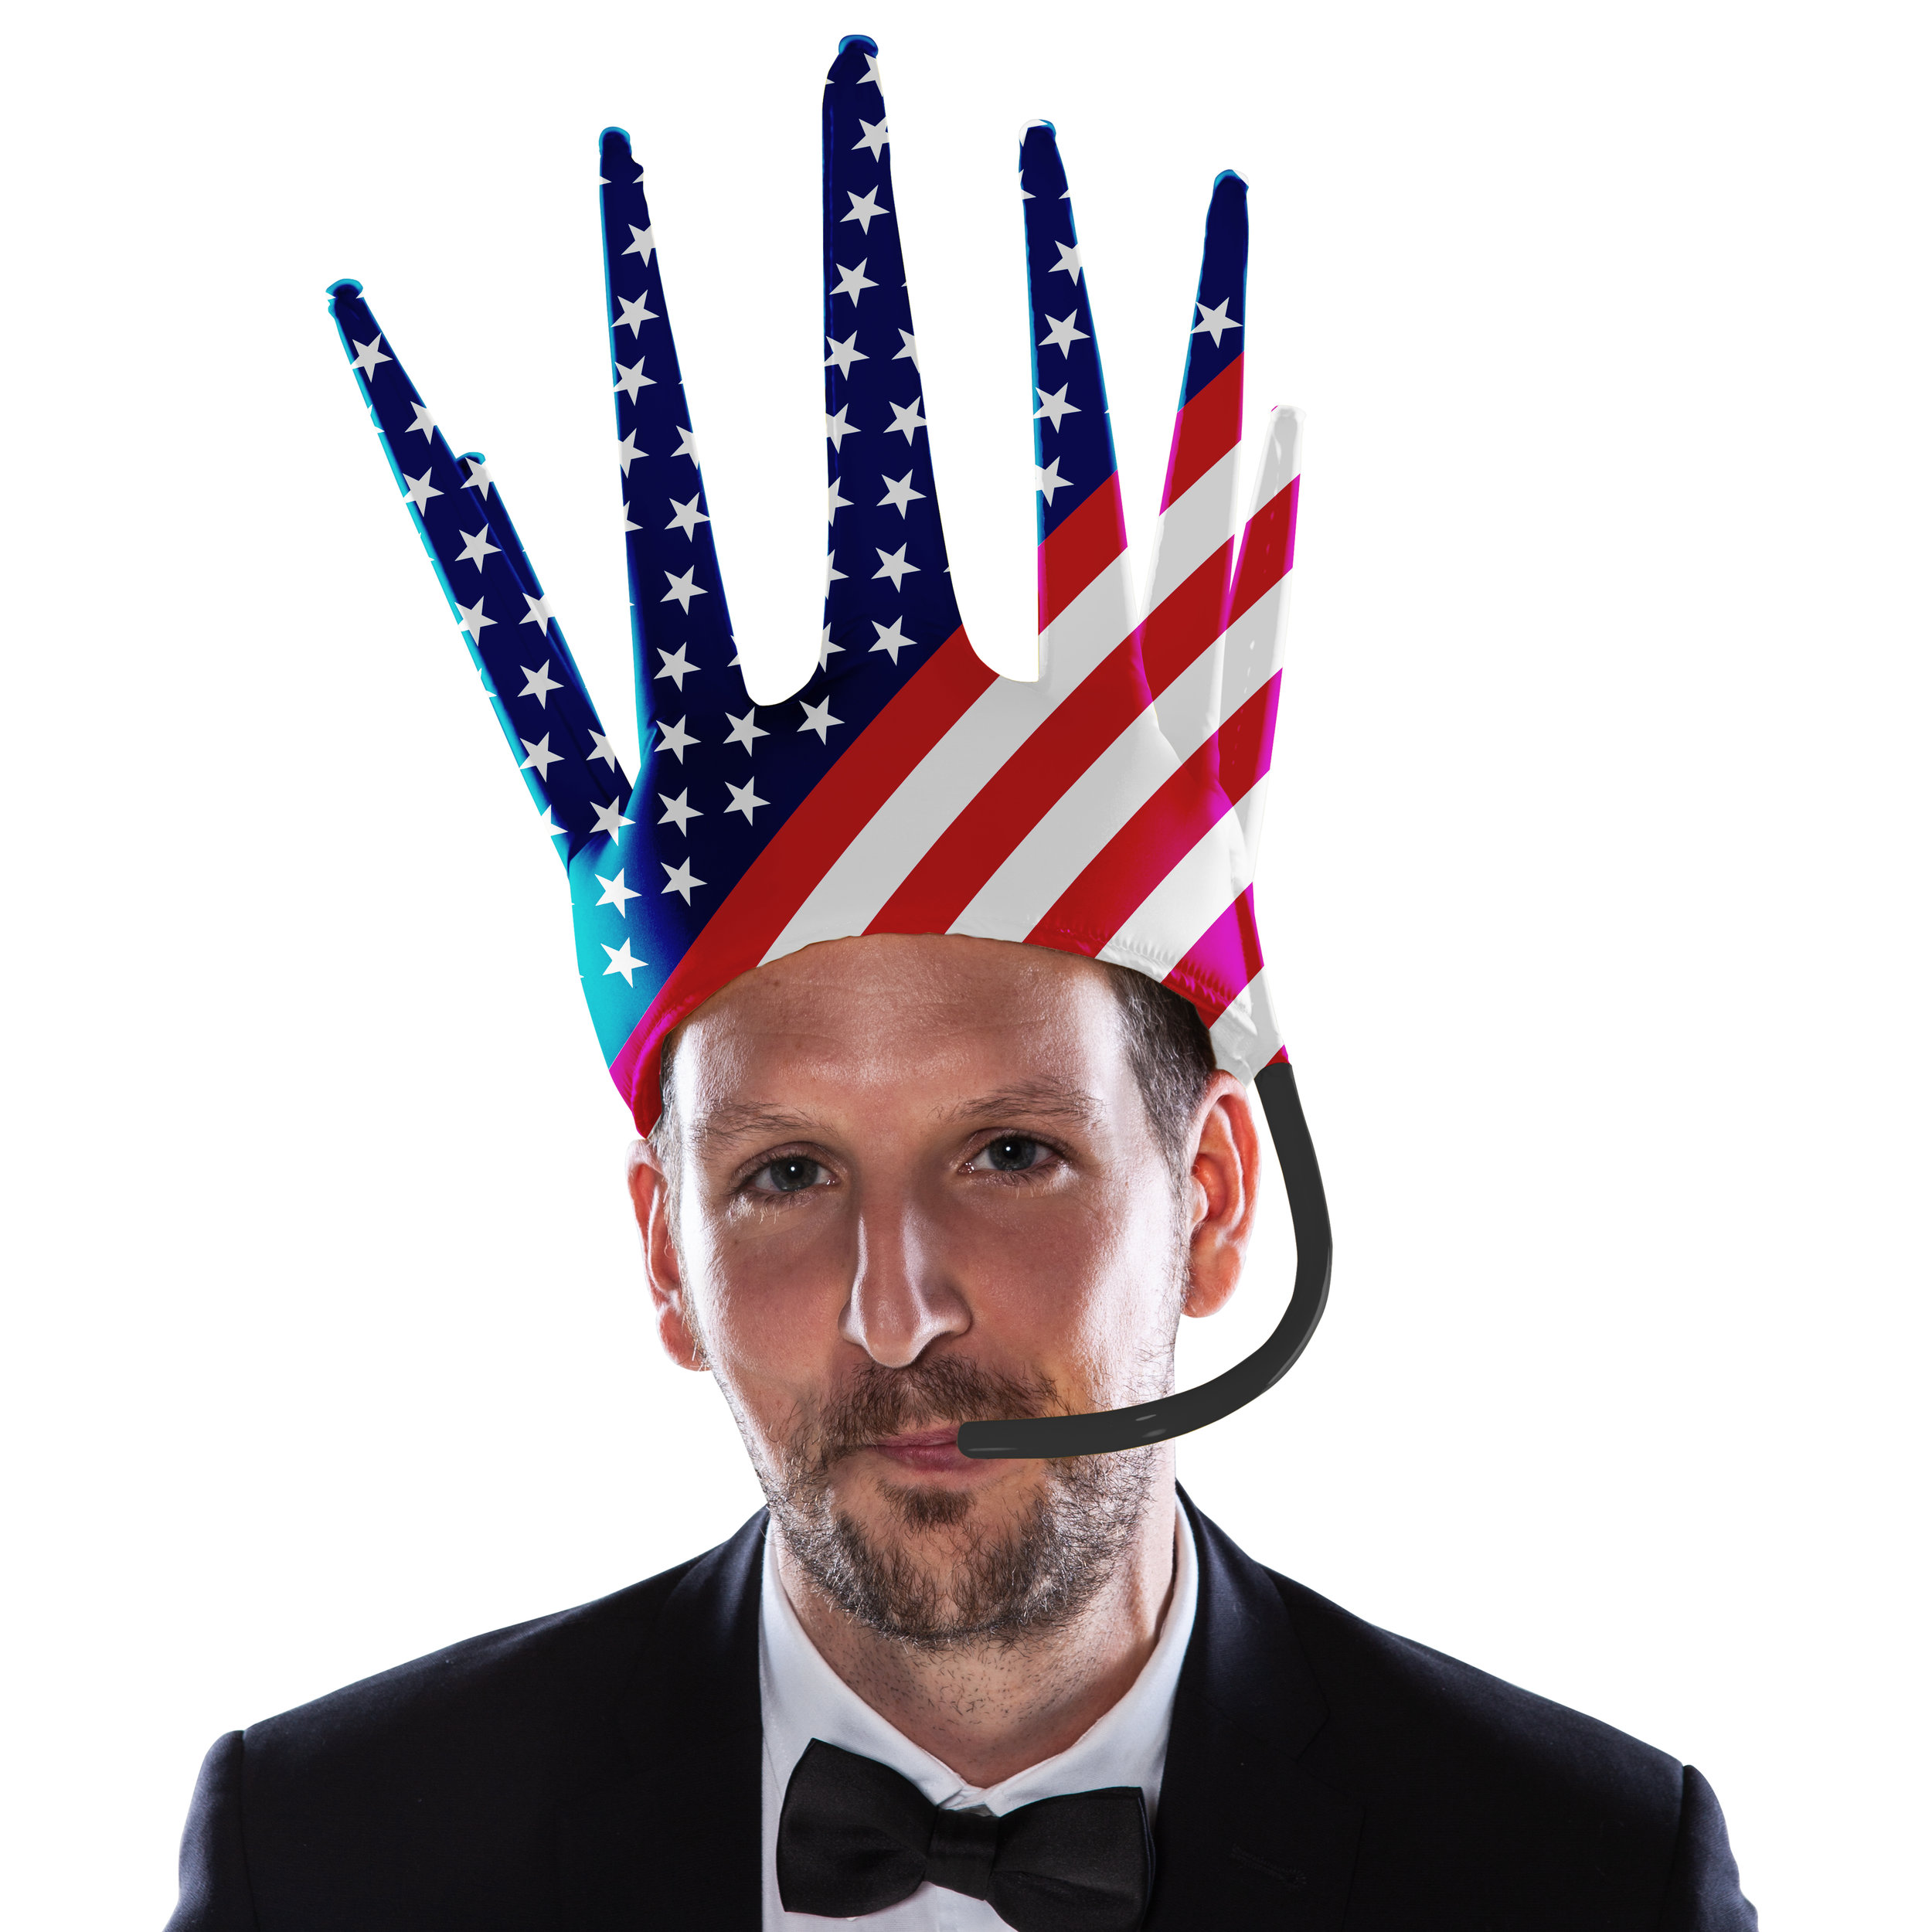 partyblowercrown_funny_party_hat_fan_4july_usa.jpg